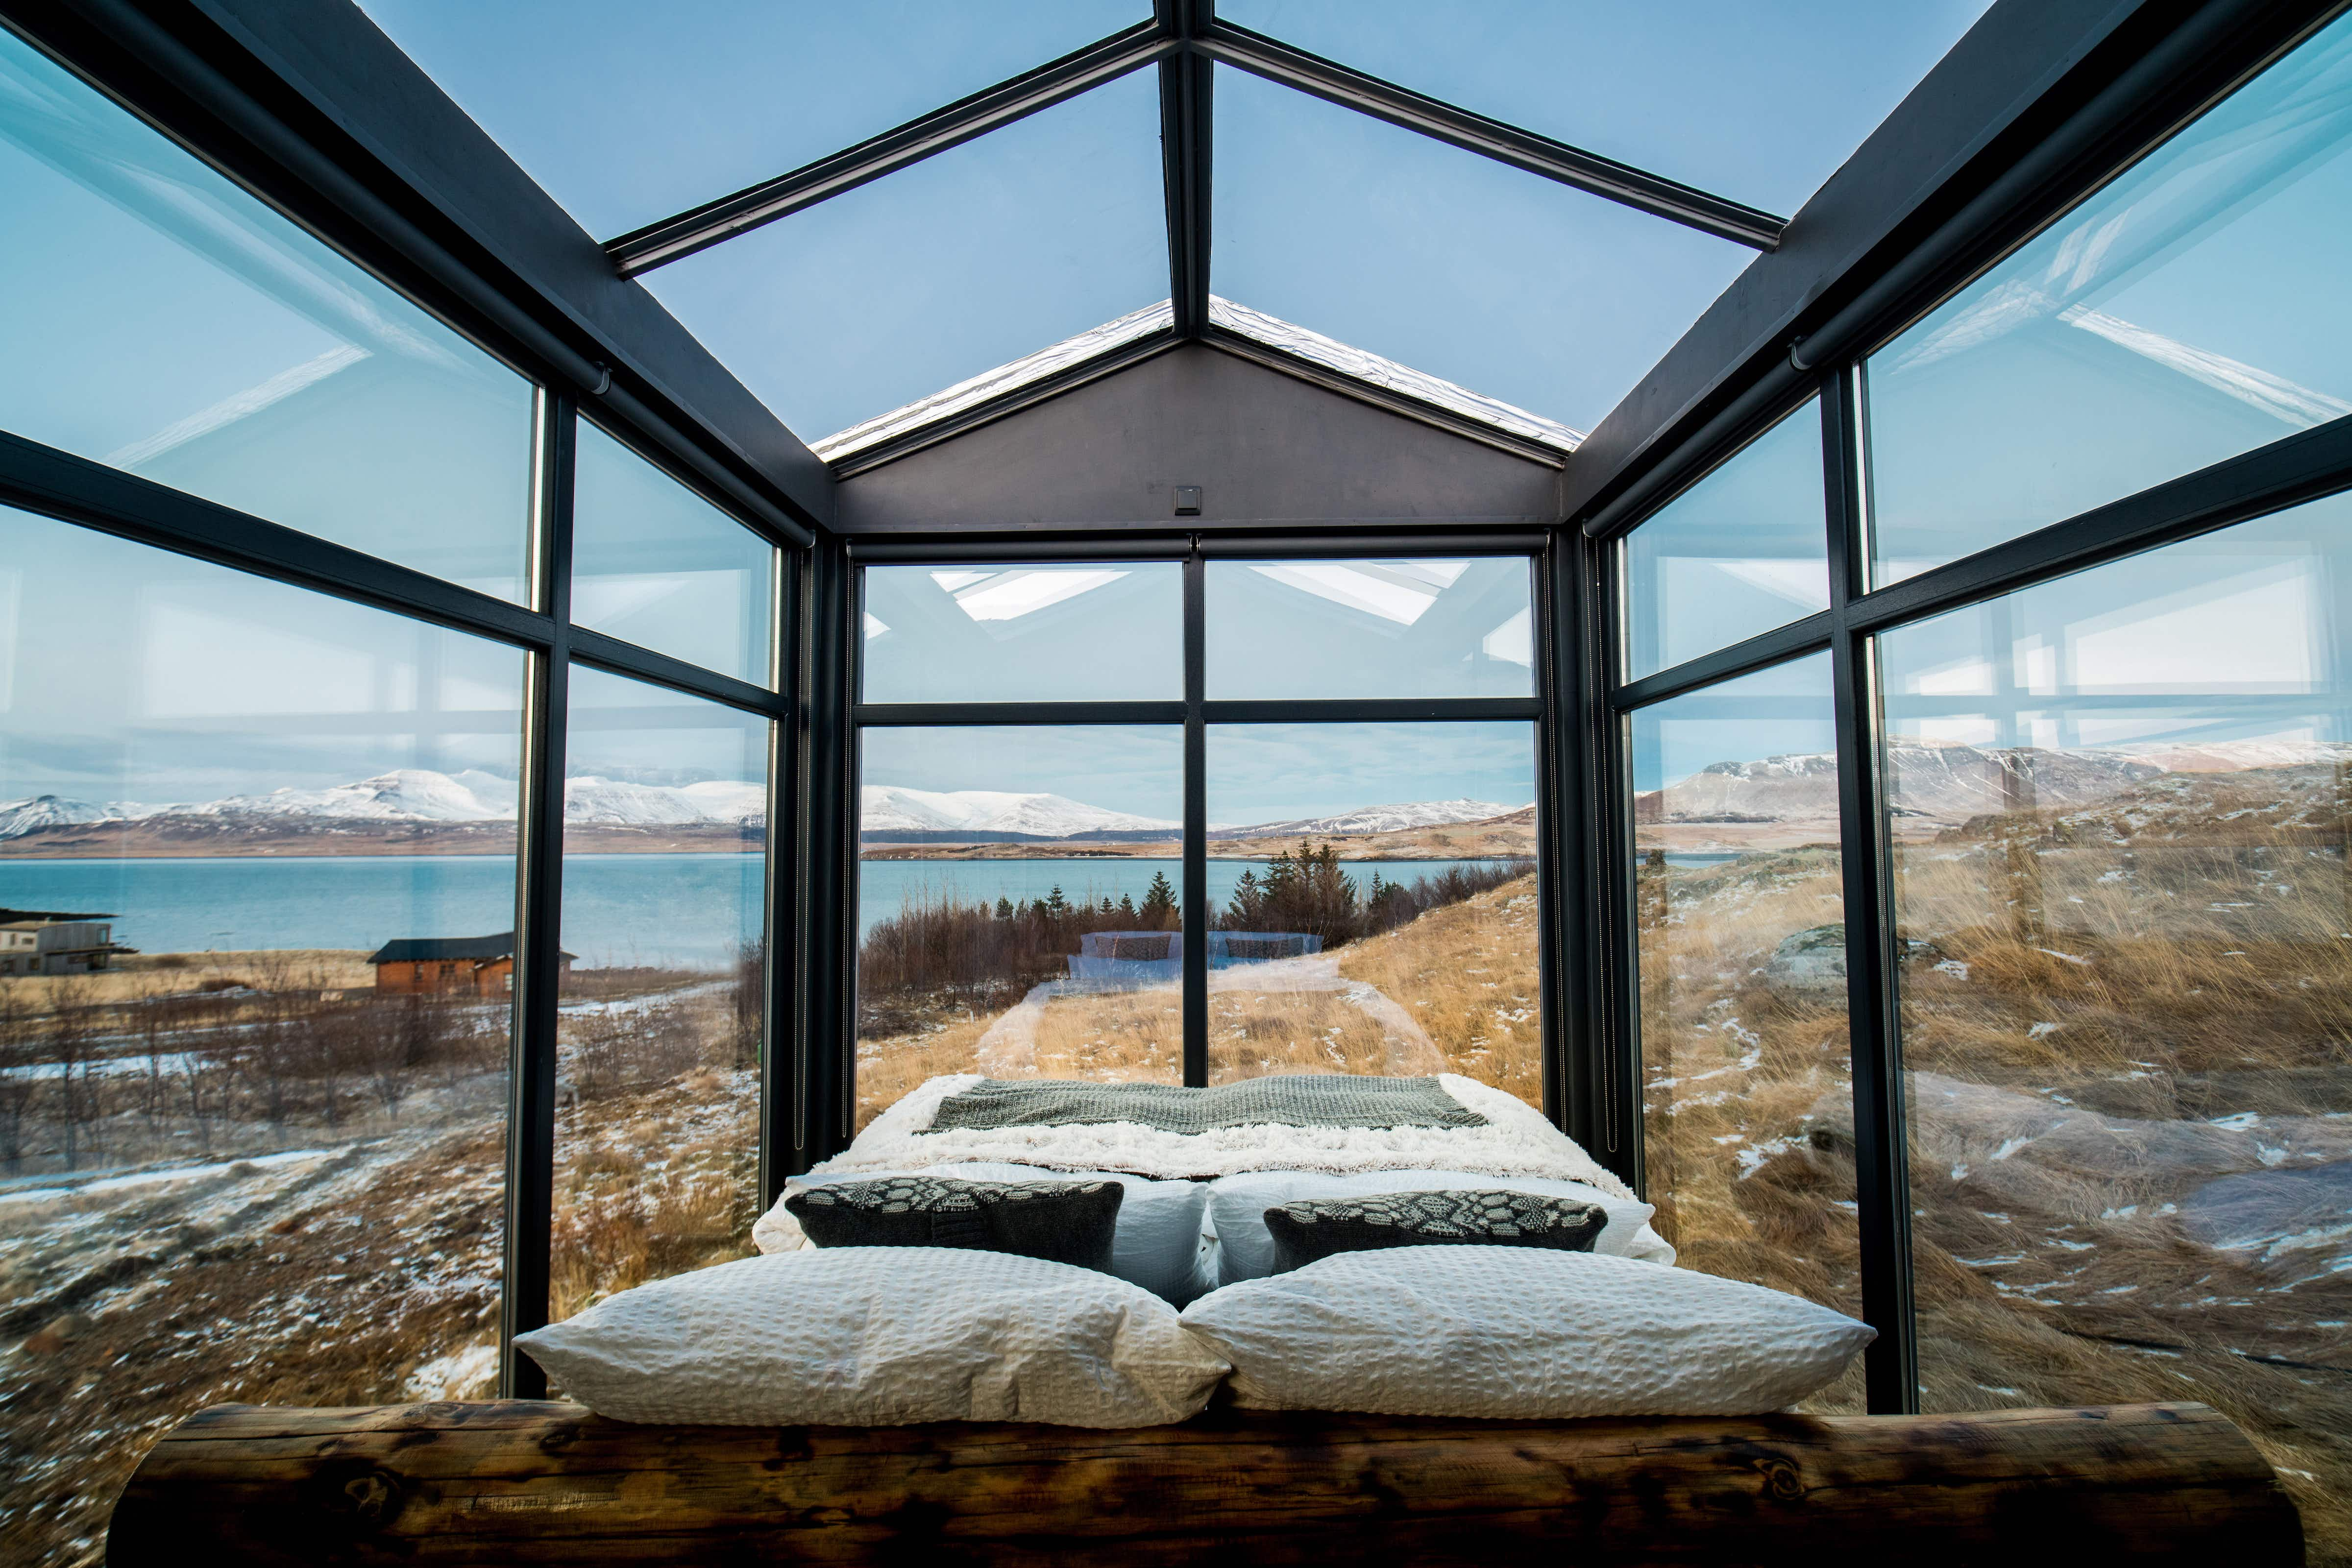 There are few better ways to soak up Iceland's midnight sun than in a glass cabin @ Panorama Glass Lodge